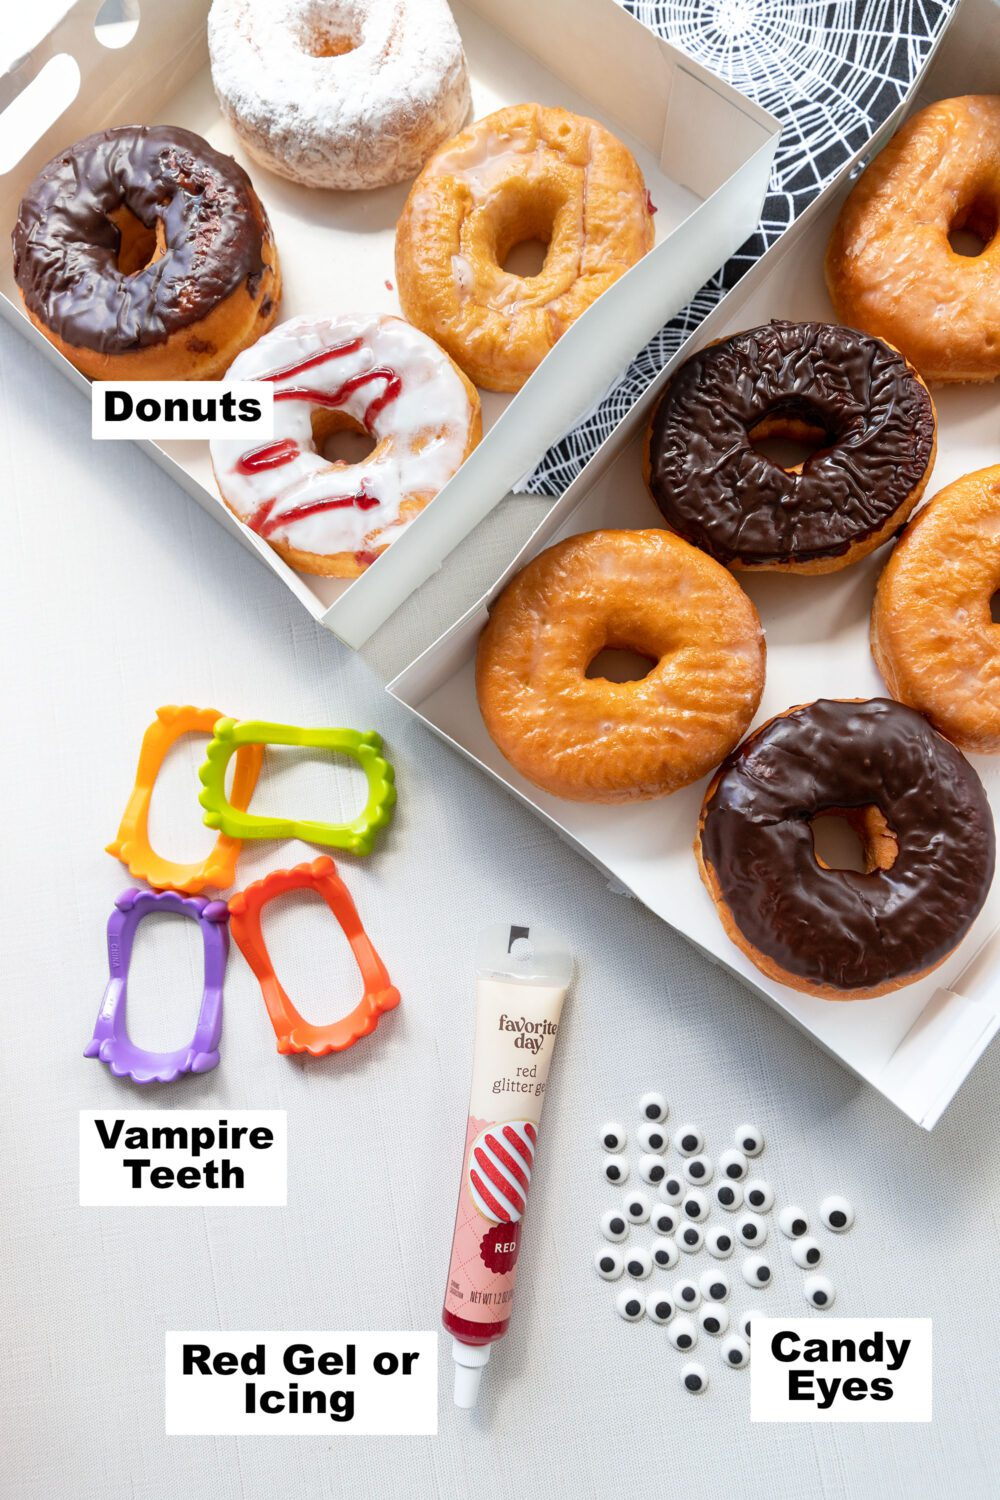 ingredients and supplies needed to make donut vampires